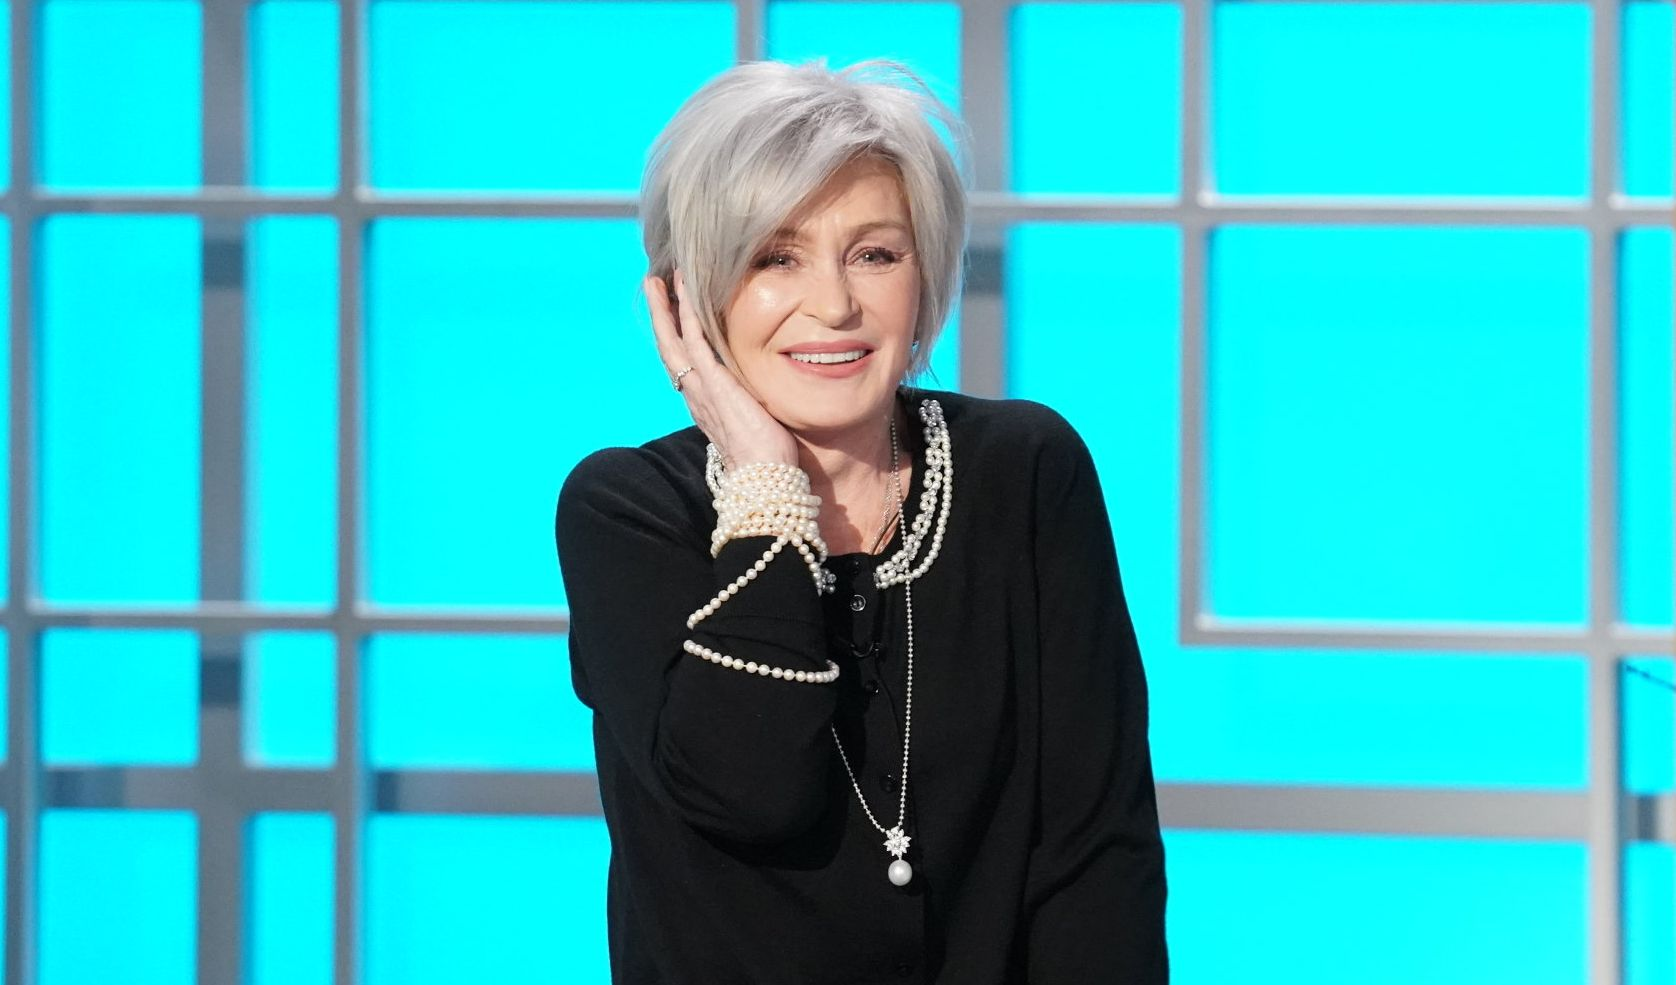 Sharon Osbourne holding on to her new silver hairstyle